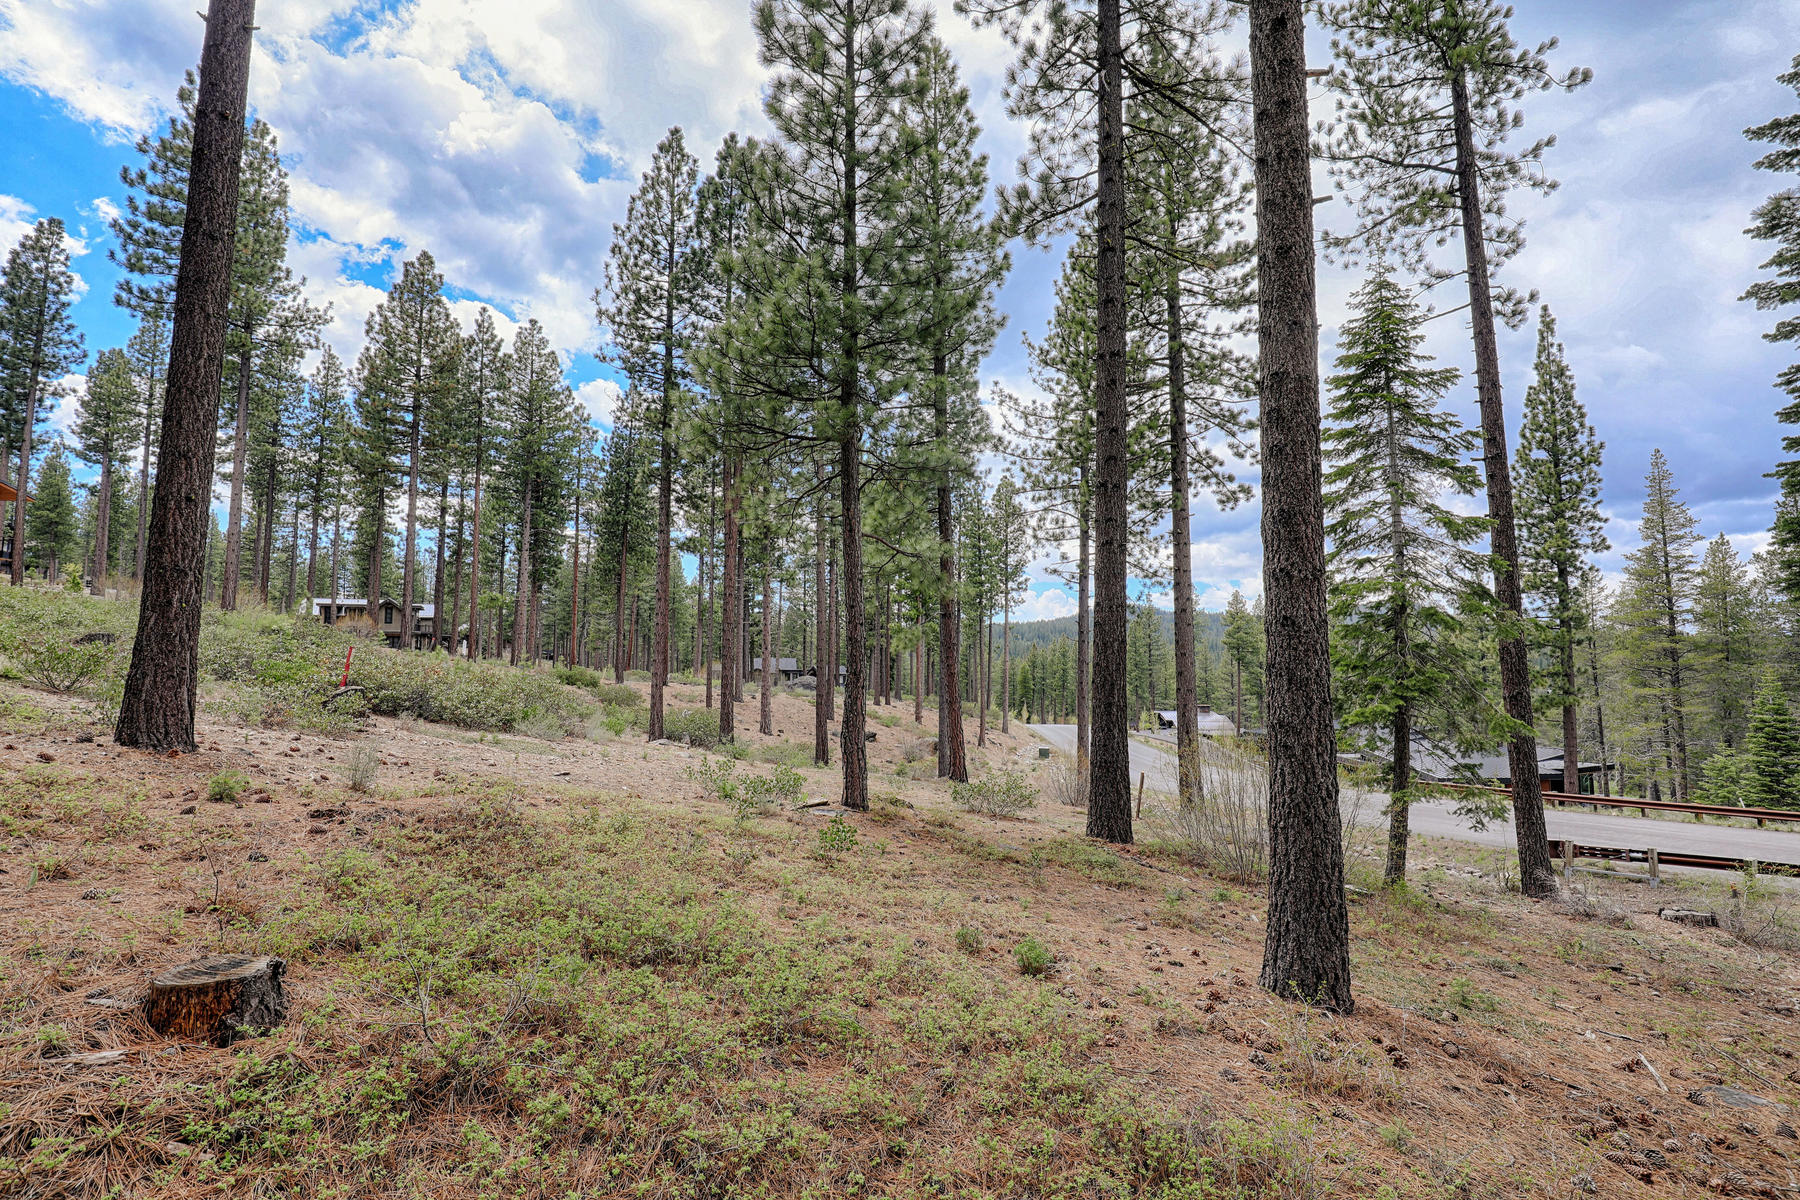 Additional photo for property listing at 8154 Villandry Drive, Truckee, CA 8154 Villandry Drive Truckee, California 96161 Estados Unidos